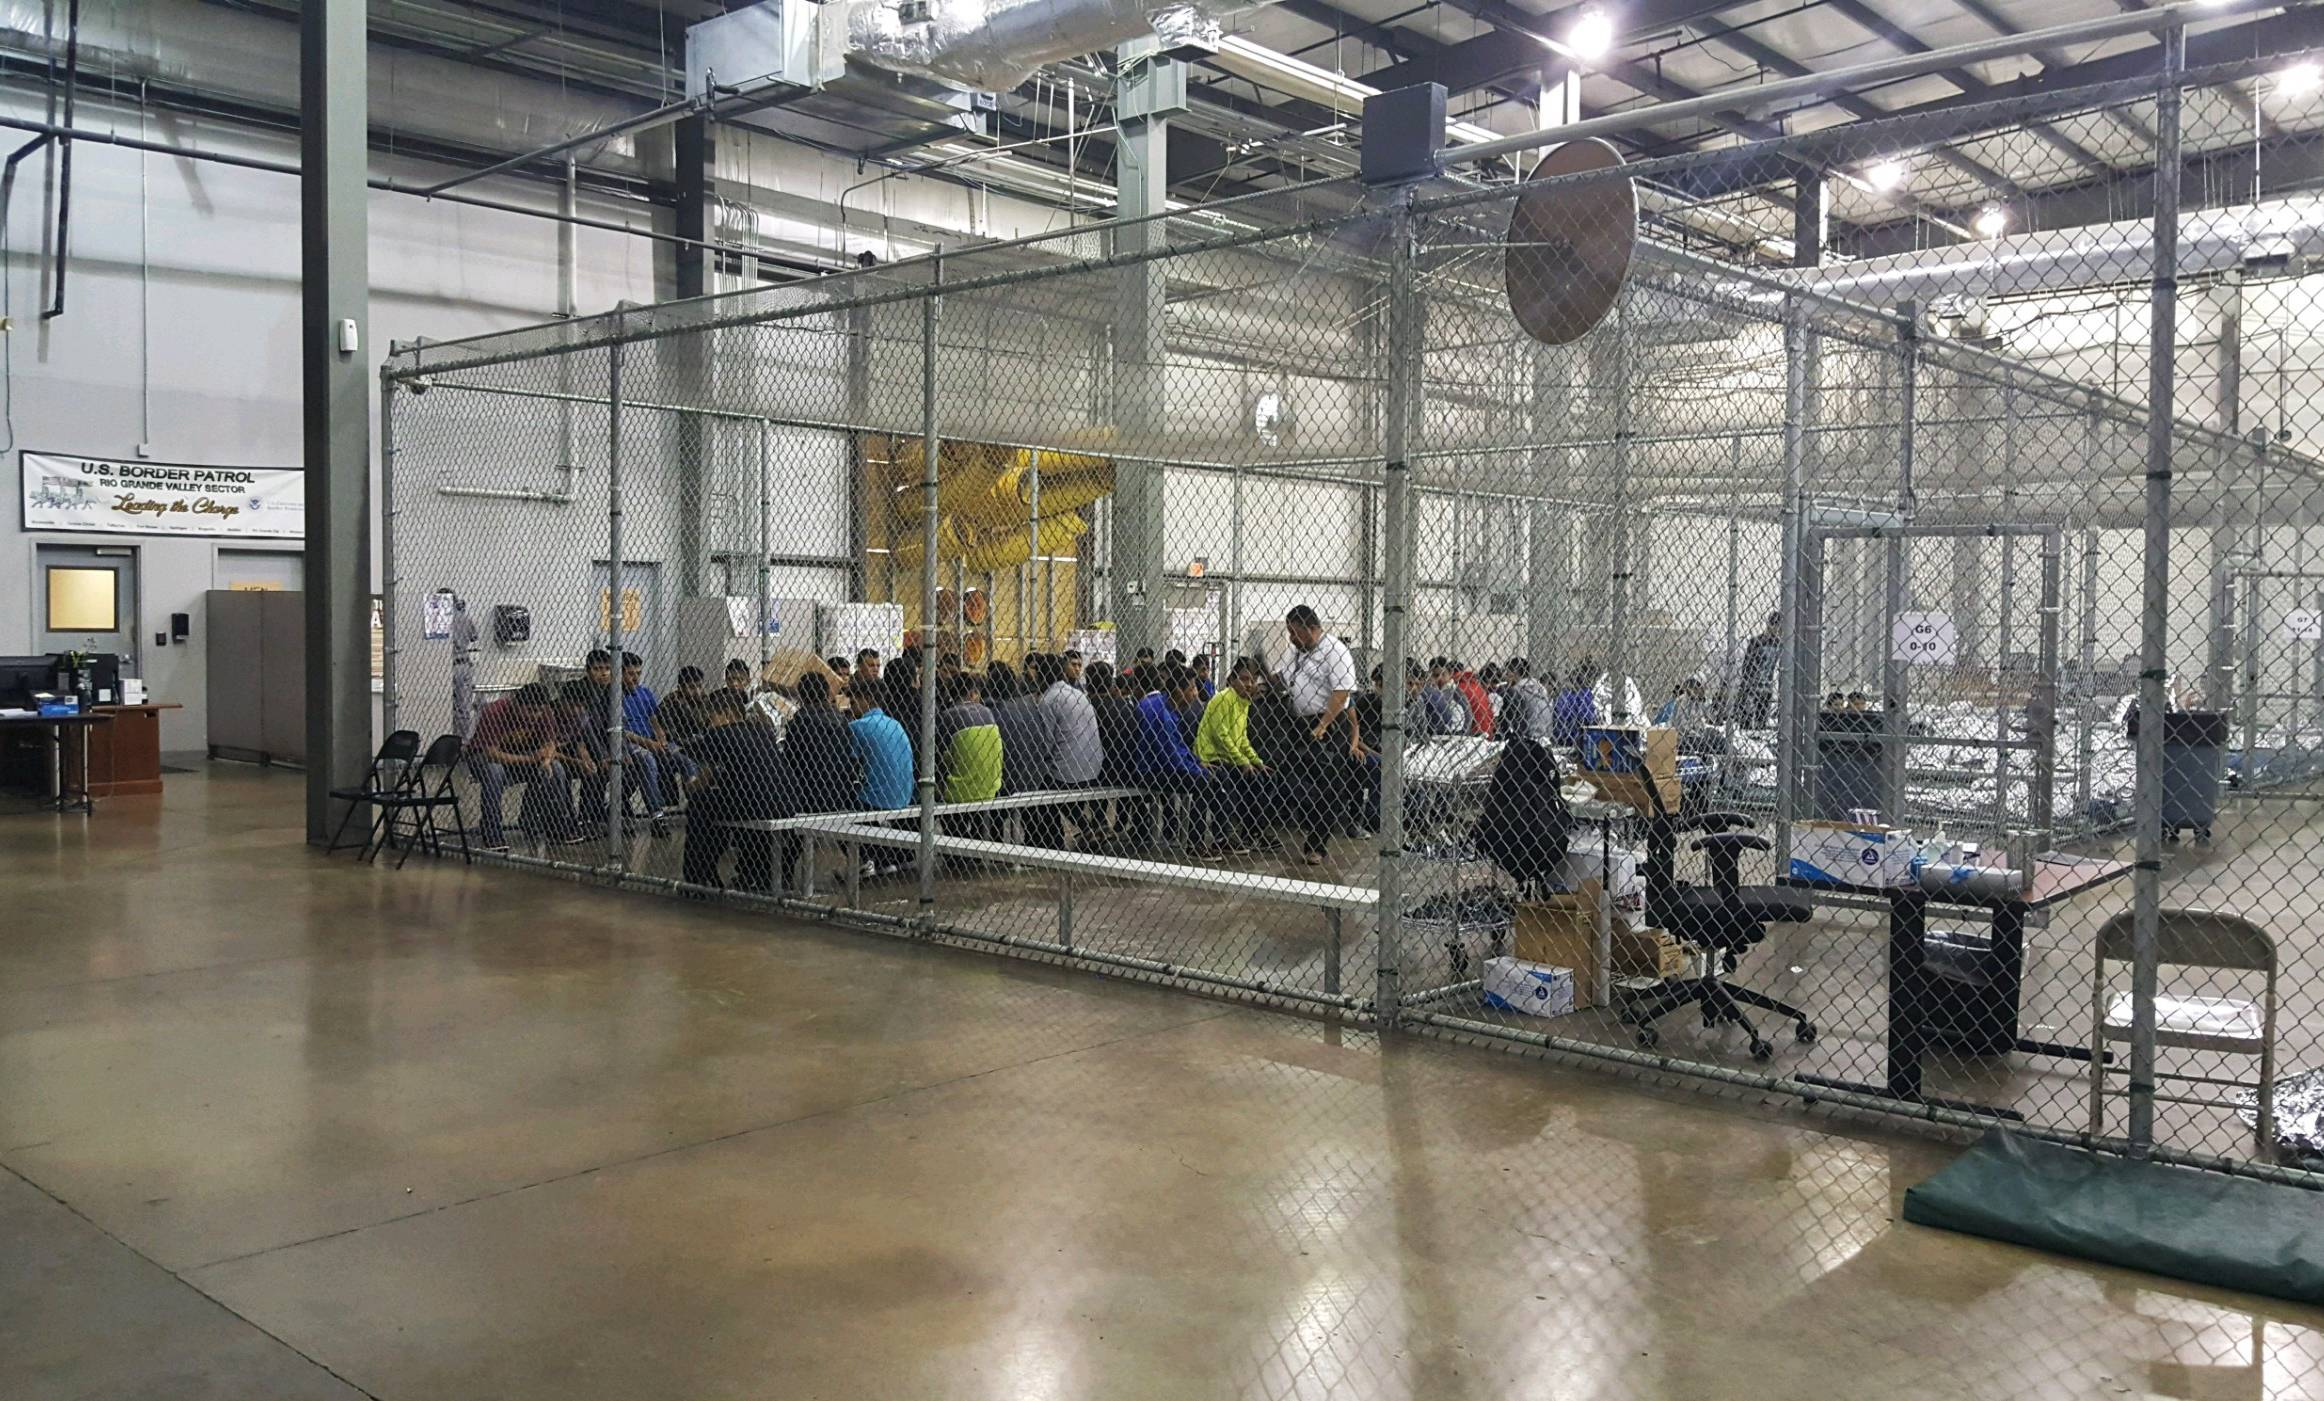 In this photo provided by U.S. Customs and Border Protection, people who've been taken into custody related to cases of illegal entry into the United States sit Sunday in one of the cages at a facility in McAllen, Texas.